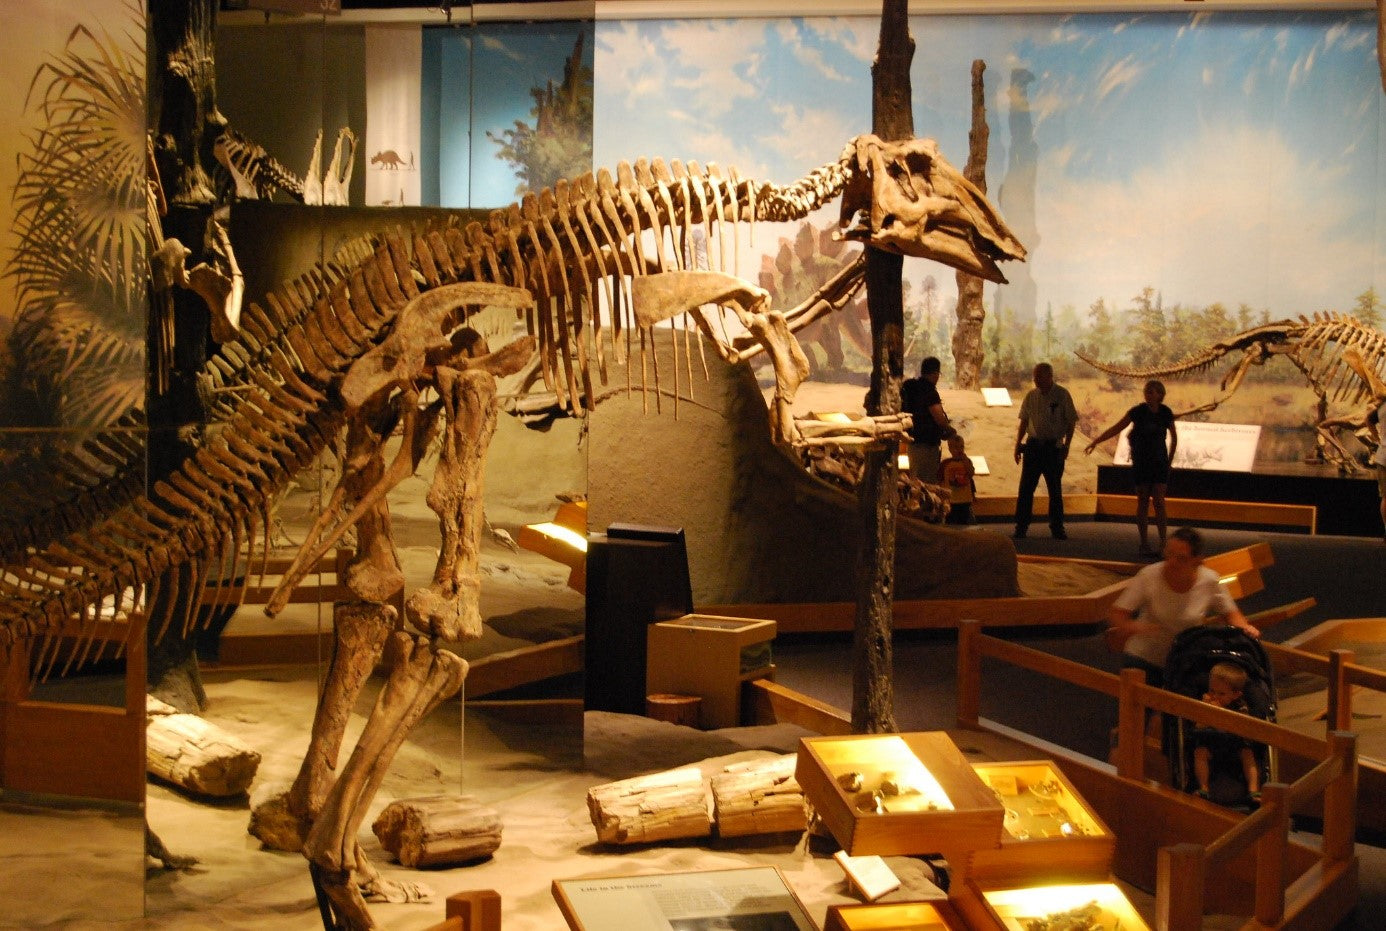 musee squelette dinosaure t rex